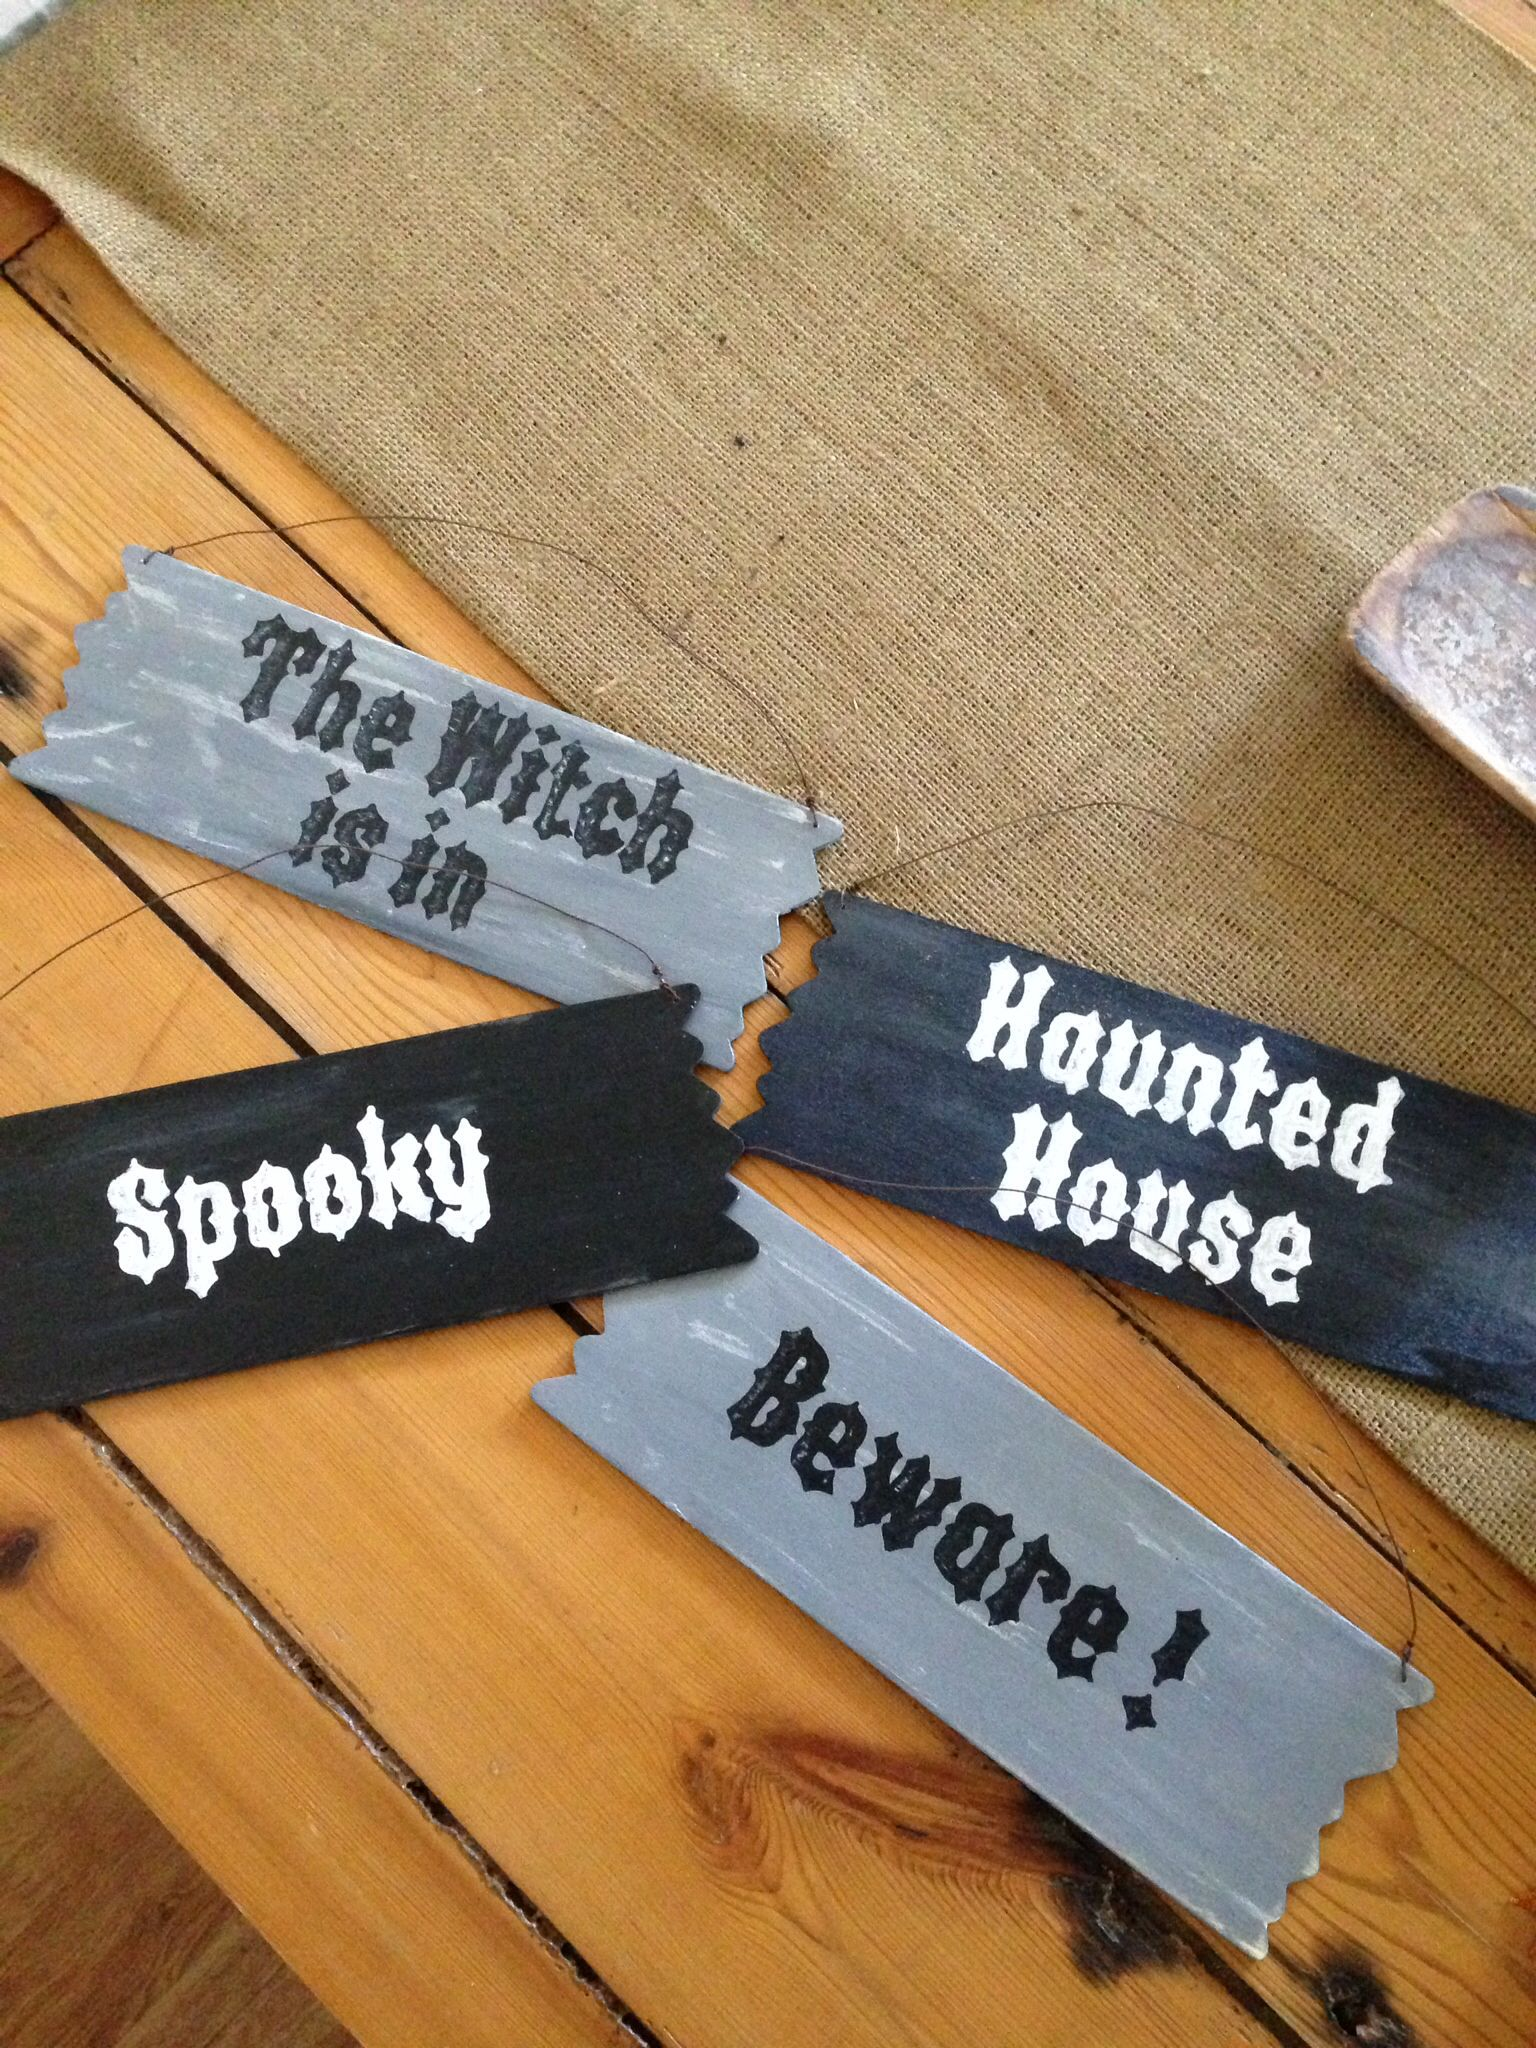 New signs for Halloween